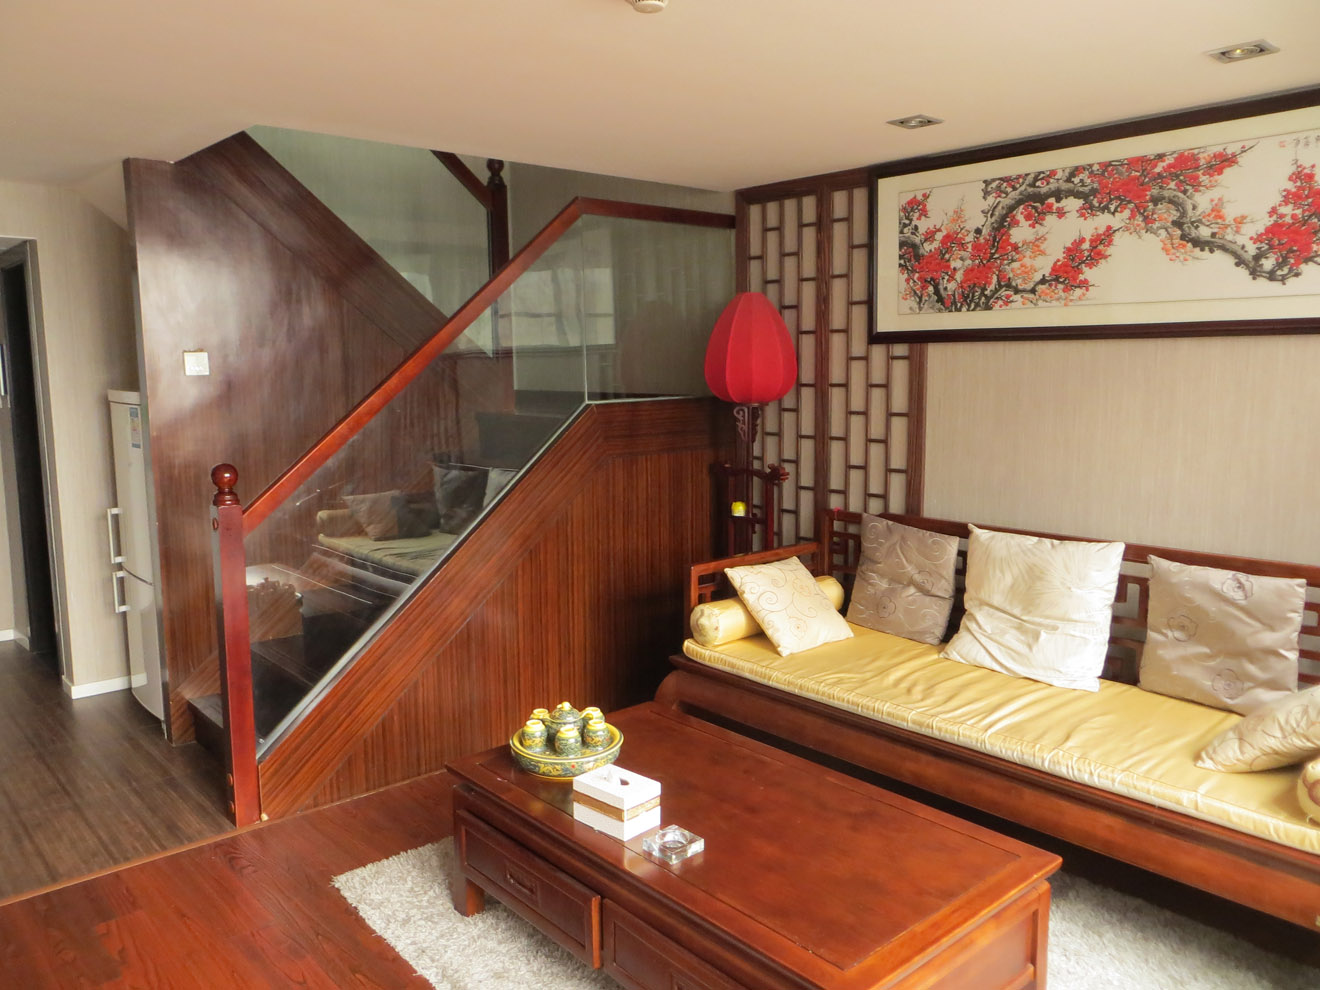 How Much Is Renting A Hotel Room In China